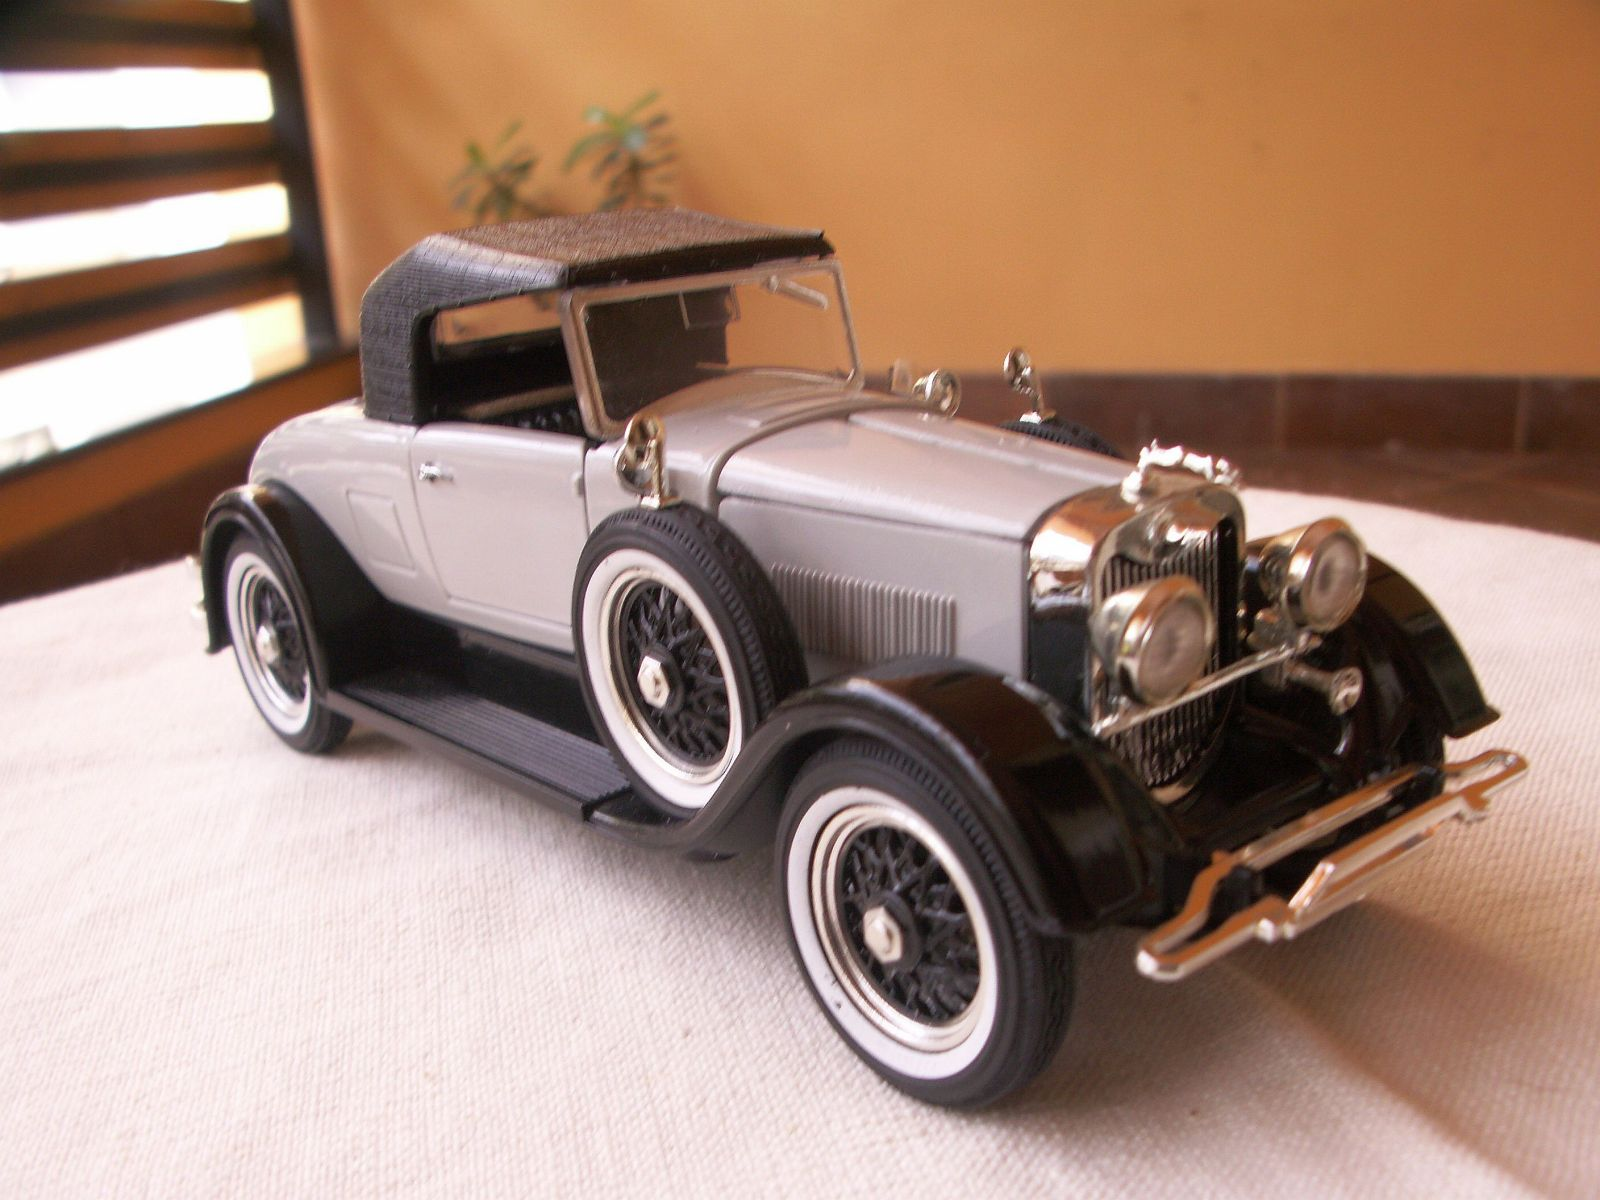 1928 Lincoln Coupe Roadster Model Cars Hobbydb